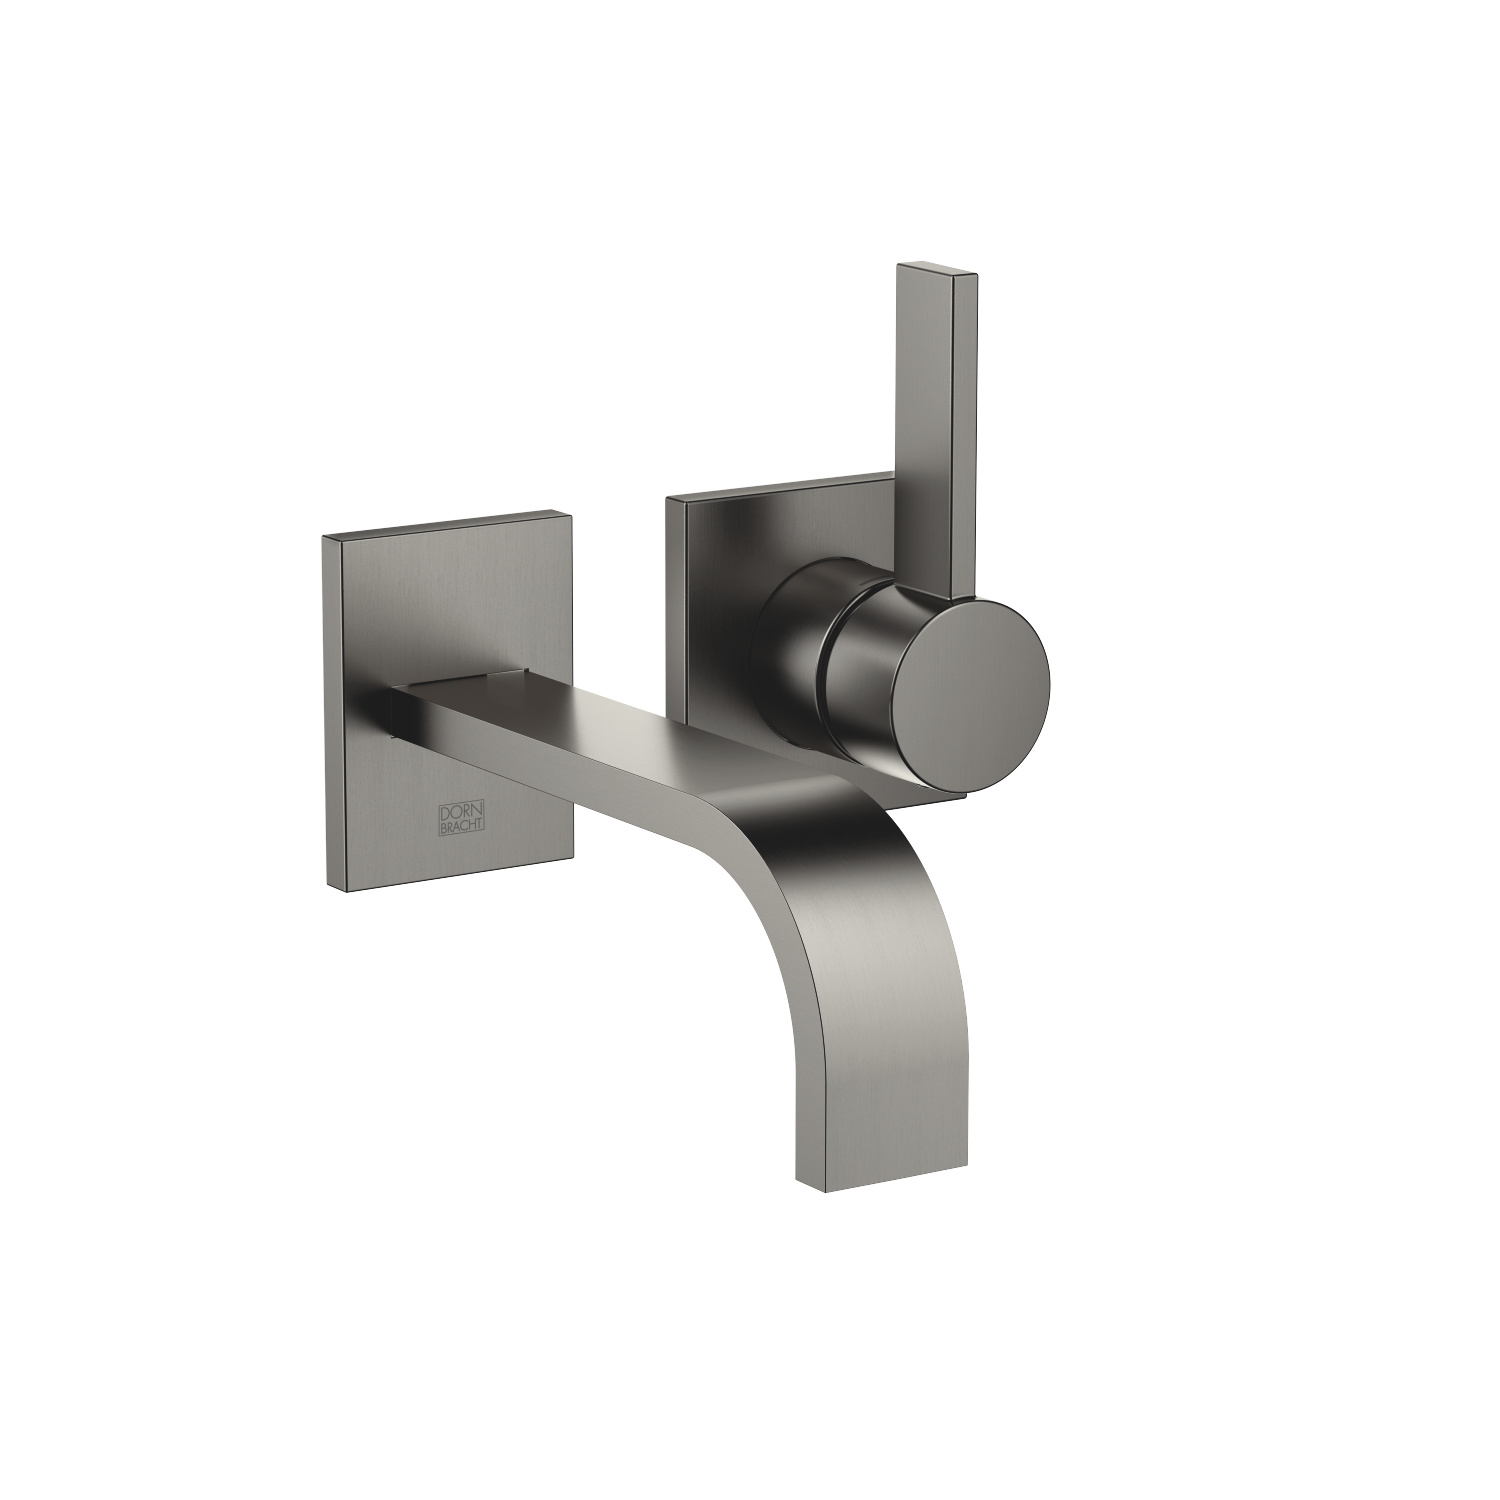 Wall-mounted single-lever mixer without drain - Dark Platinum matte